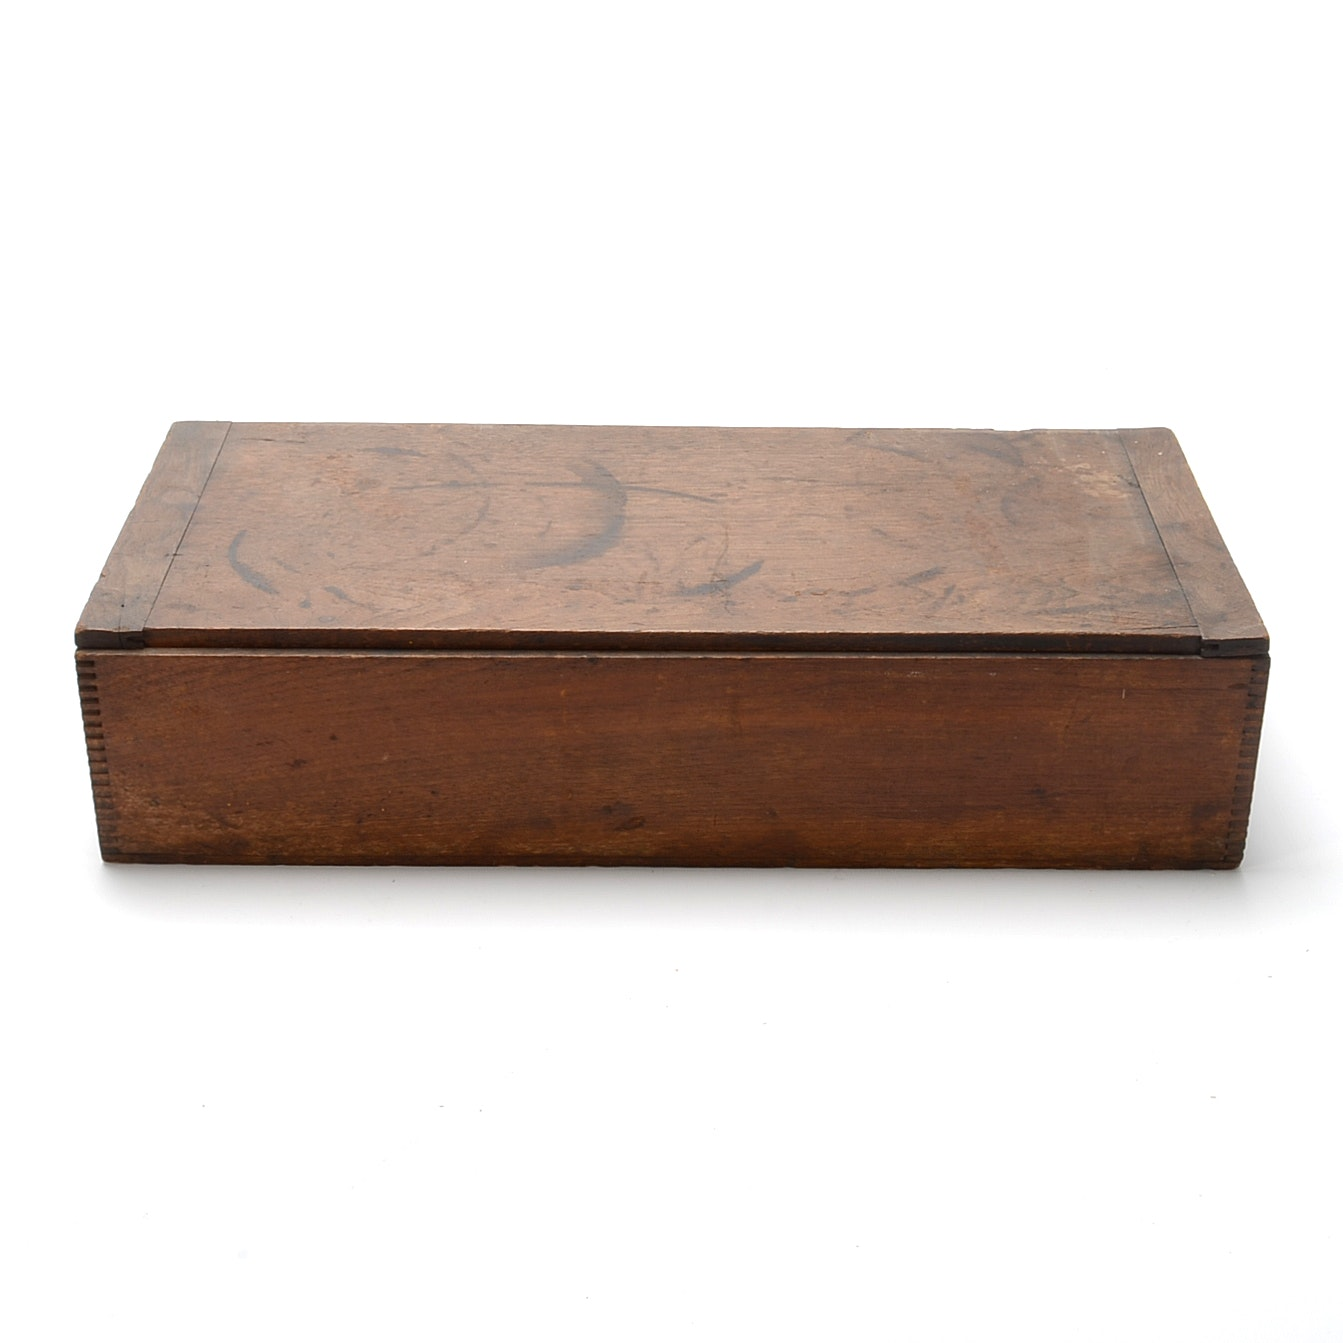 Antique Dovetailed Walnut Divided Box